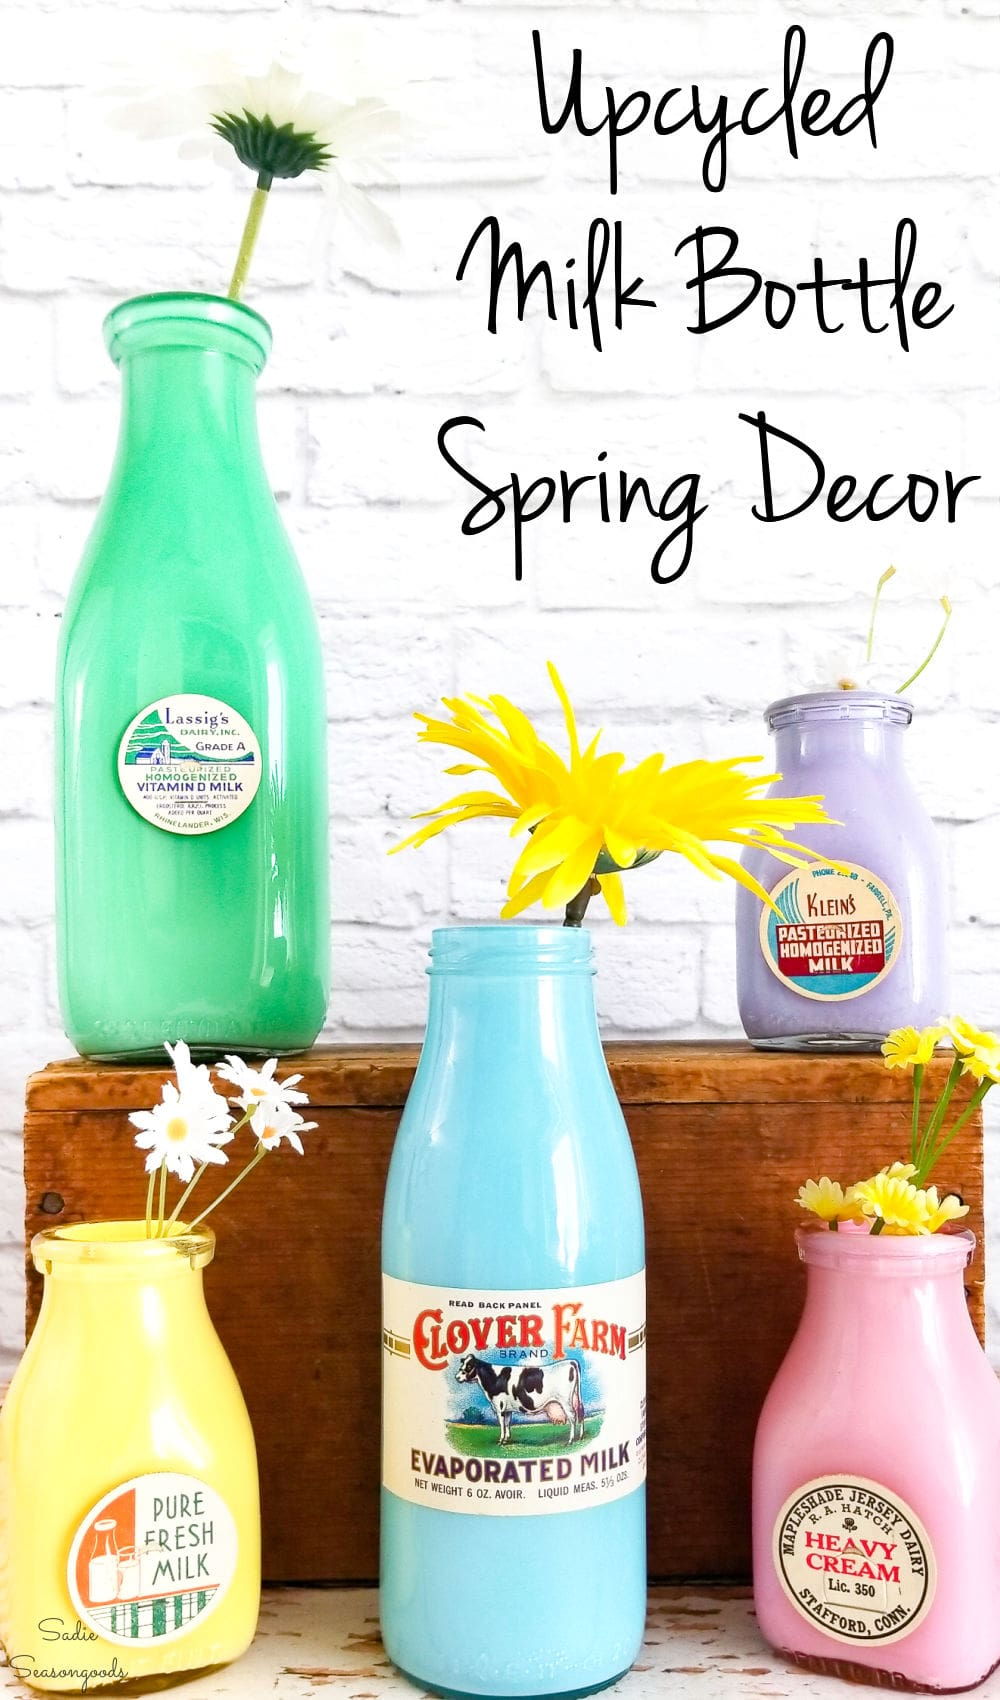 Upcycling idea for vintage milk bottles